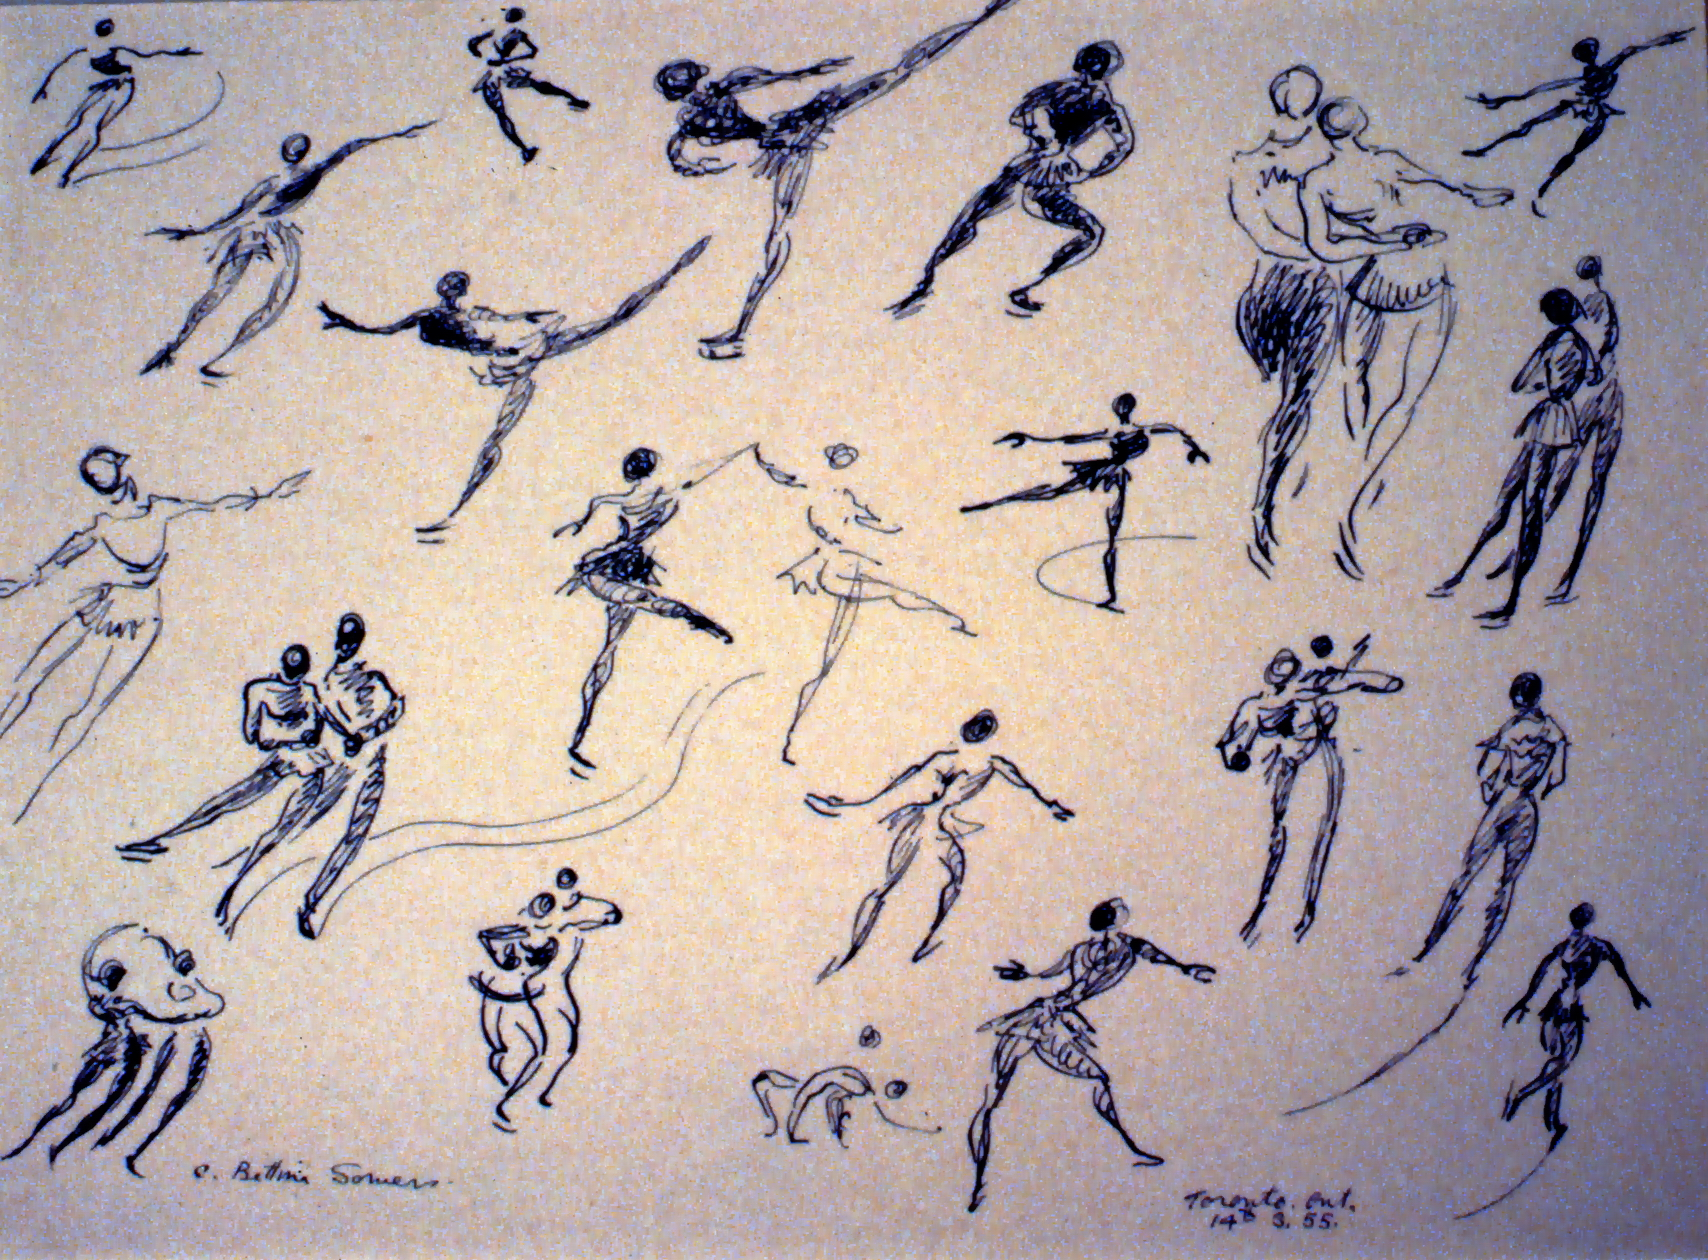 Skaters, 1955, Bettina Somers, watercolour & ink on paper, 28 x 38 cm, 1990.02.02. Gift of Rita Lamb.